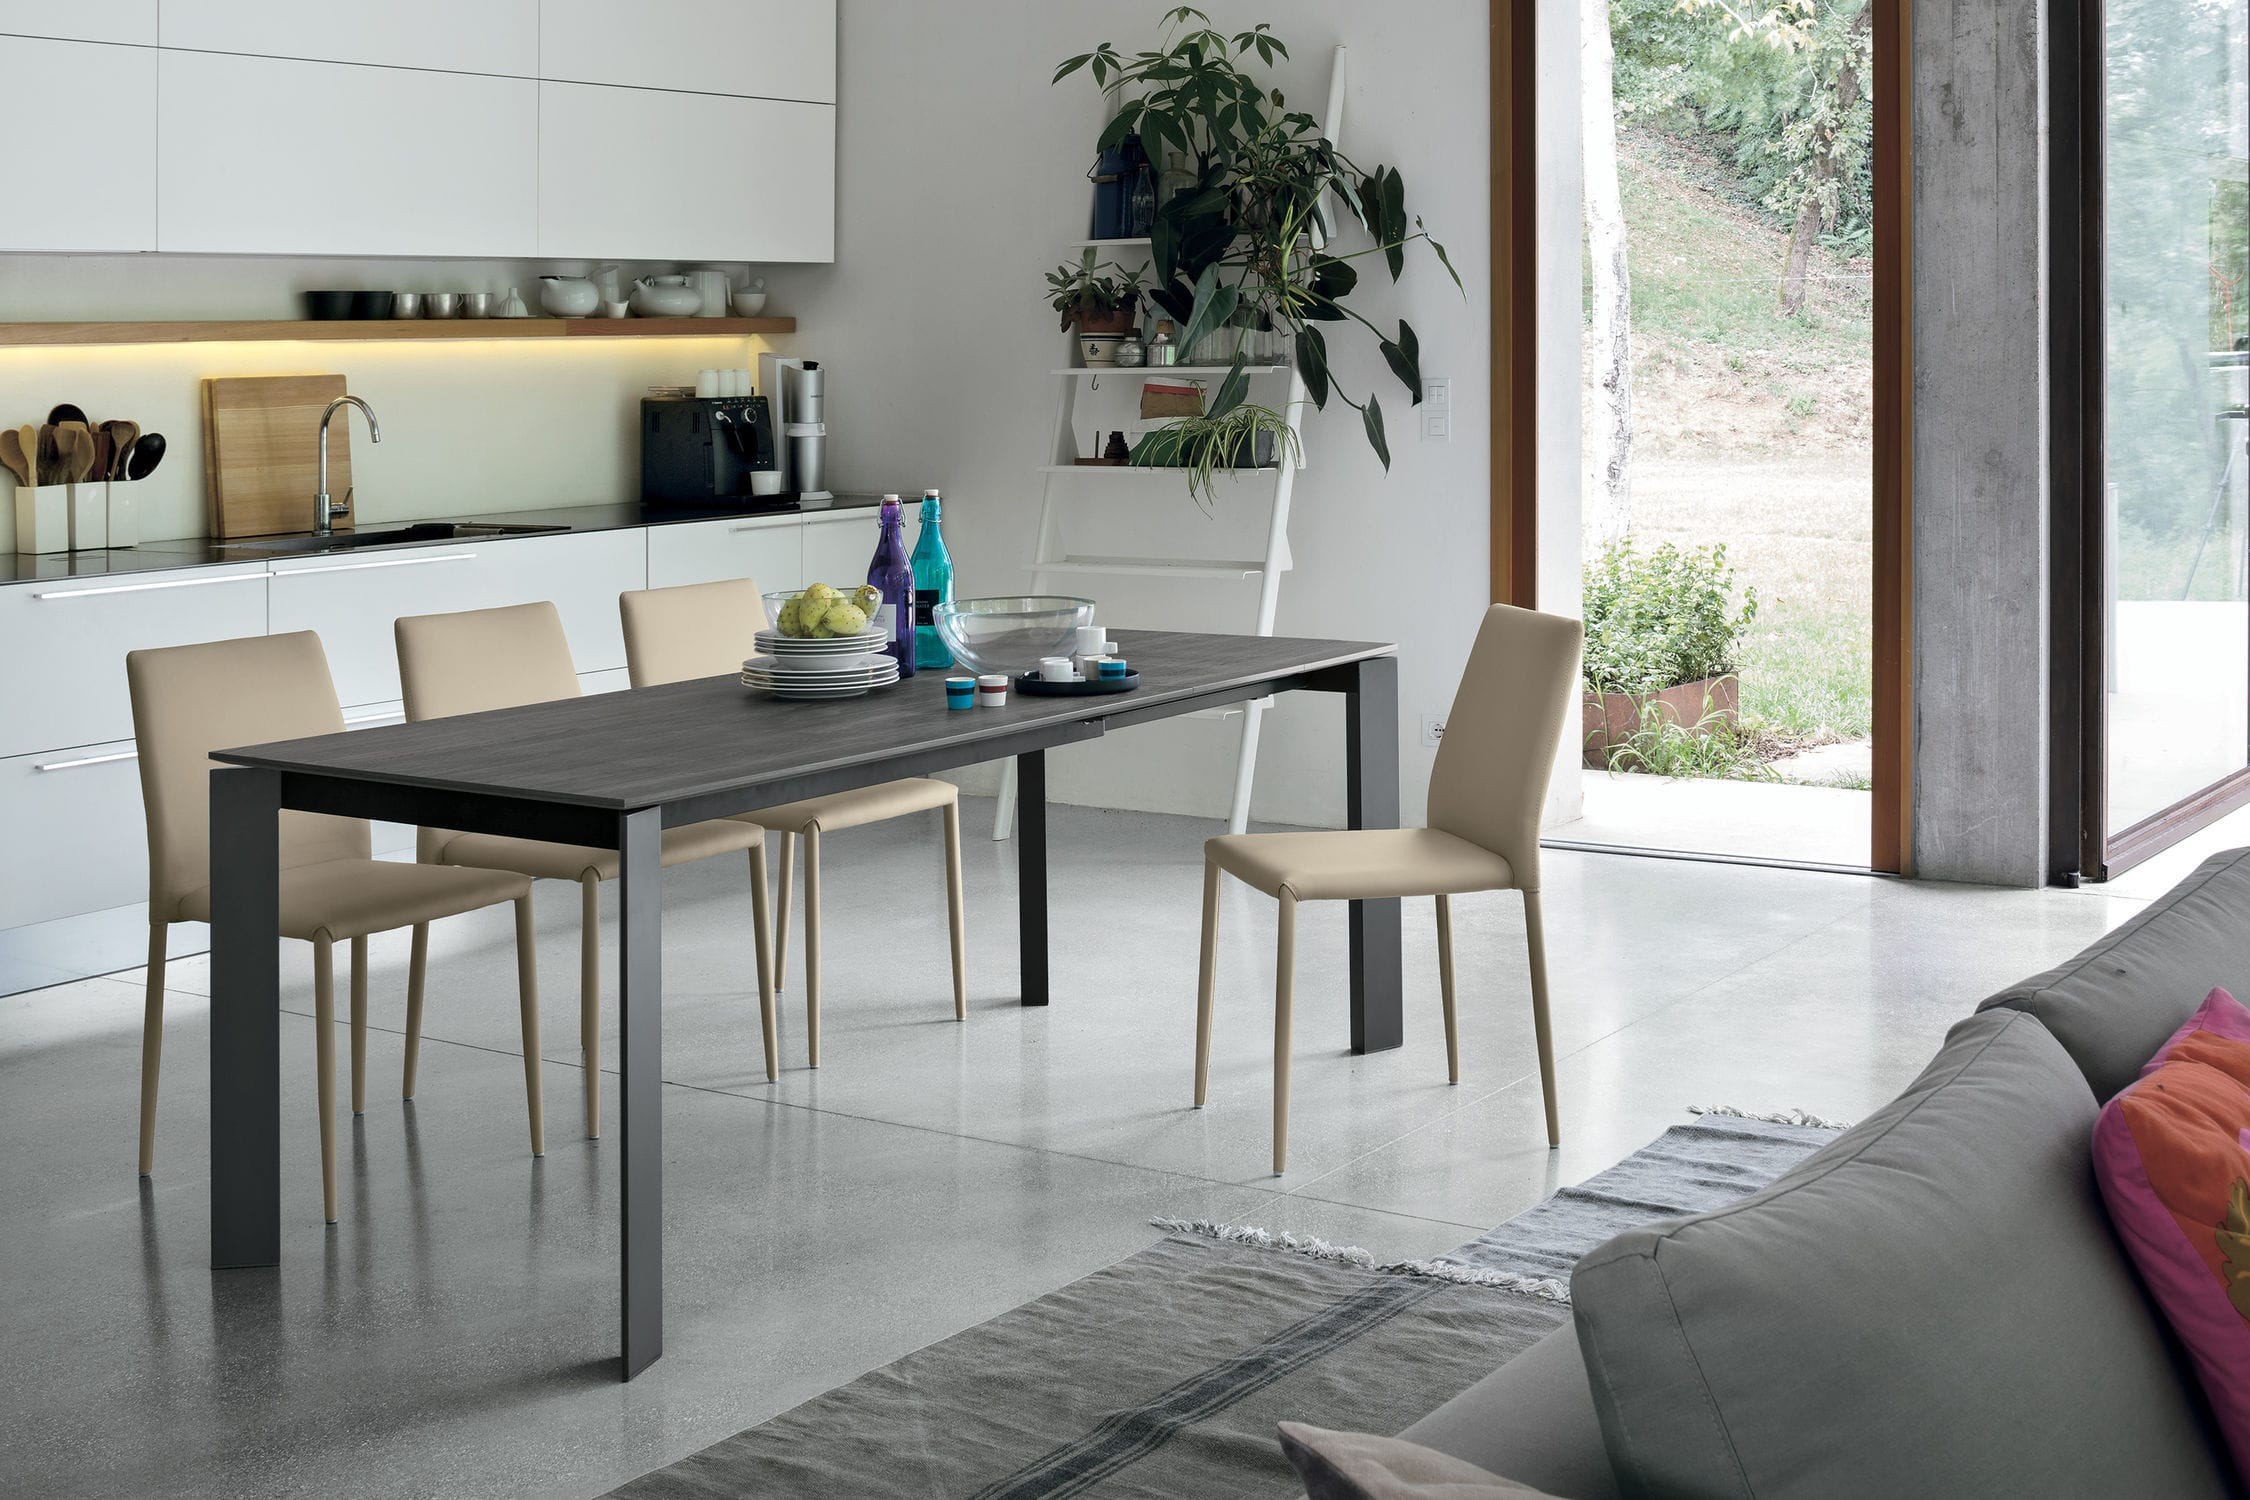 product laminate kitchen table Dining table contemporary porcelain stoneware laminate SATURNO Target Point New